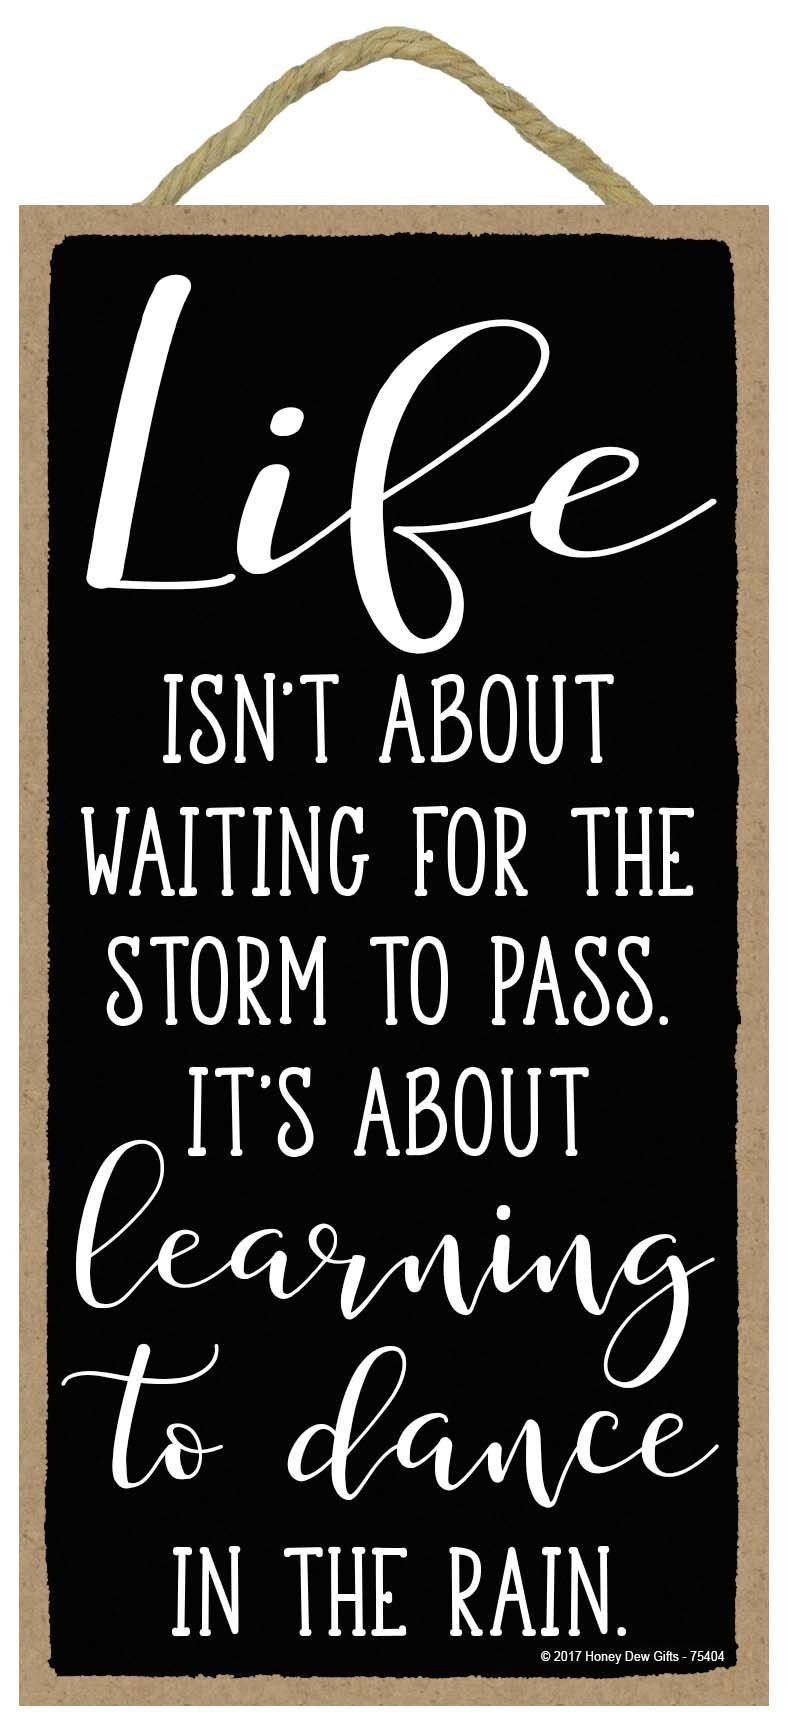 Life Isnt About Waiting for the Storm to Pass. Its About Learning to Dance in the Rain - 5 x 10 inch Hanging,Wall Art, Decorative Wood Sign Home Decor